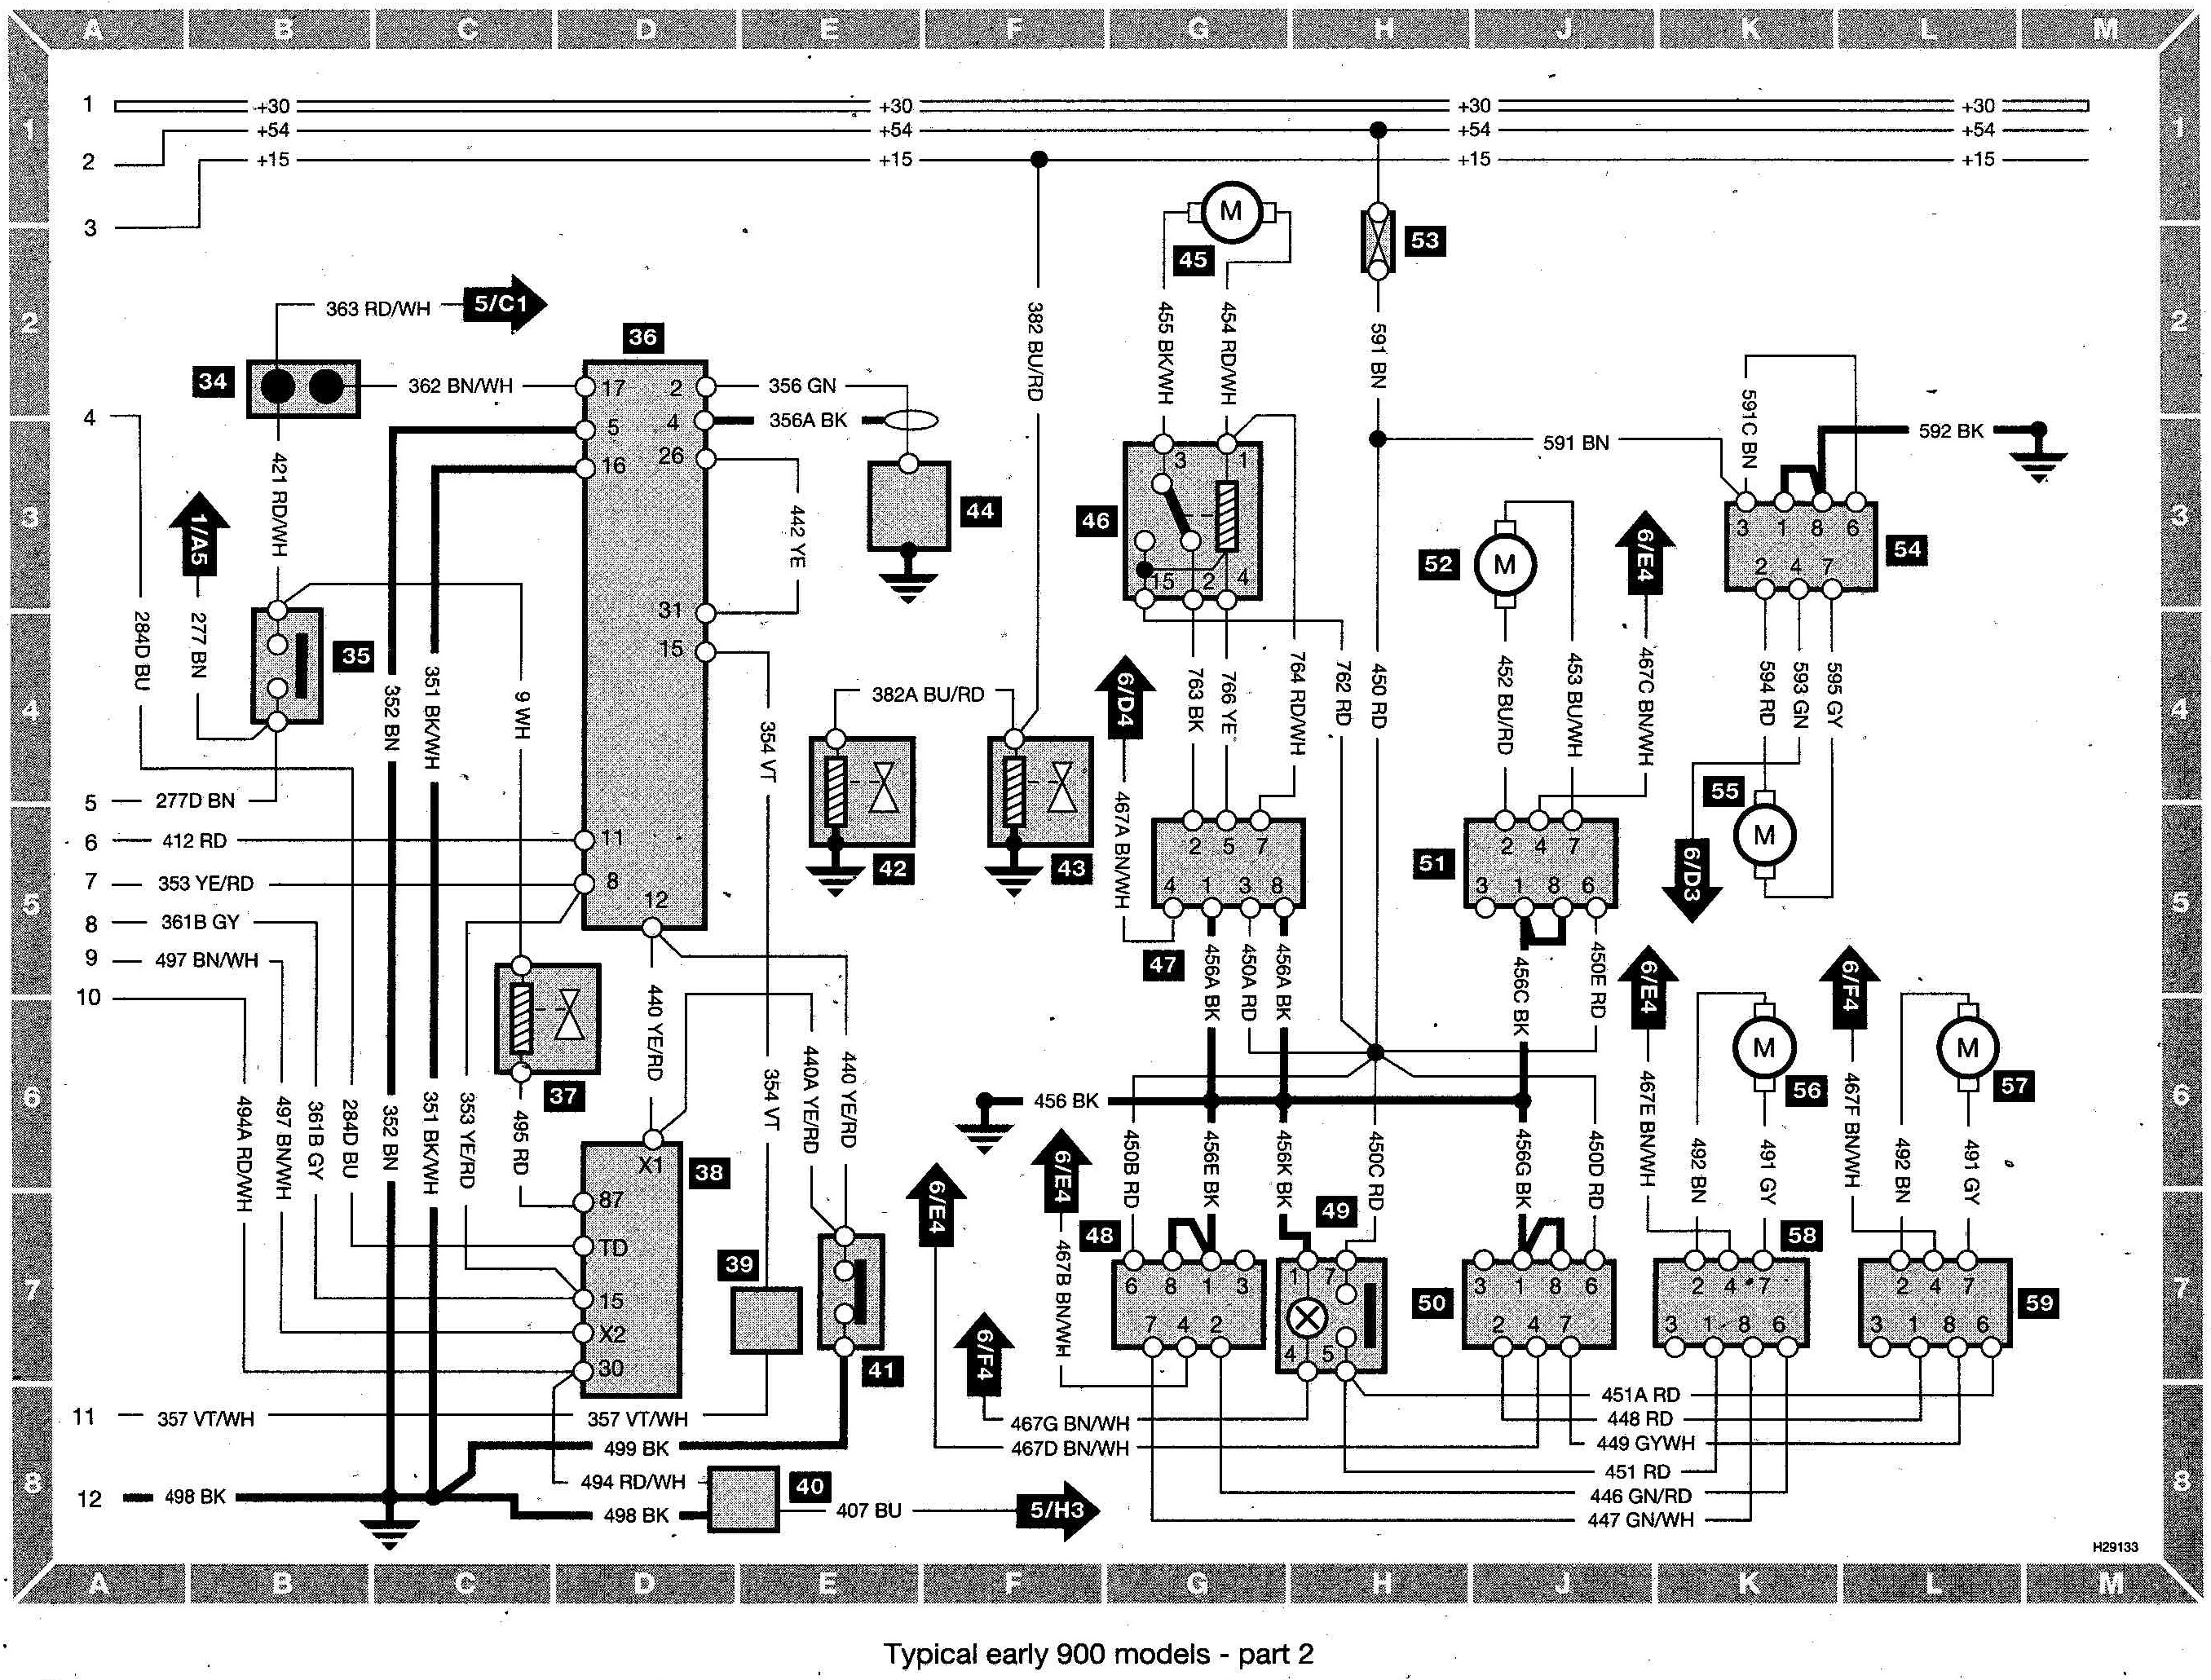 saab ng wiring diagram saab wiring diagrams online saab radio wiring diagram saab wiring diagrams